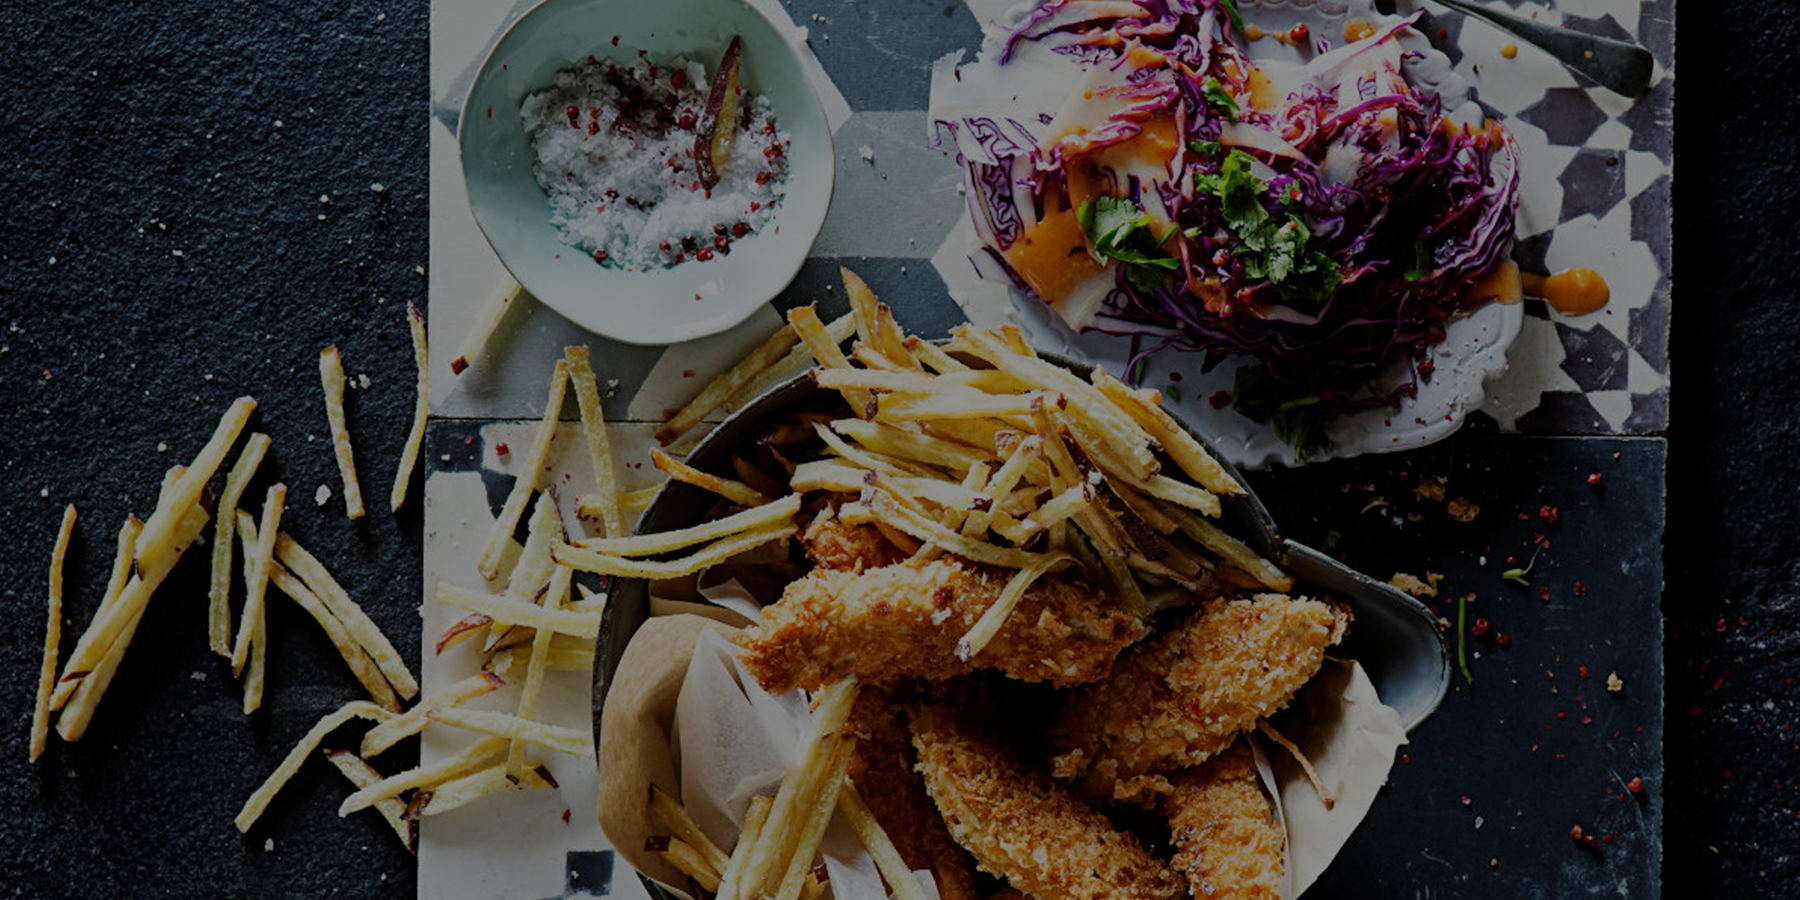 Crispy crumbed chicken fillets with skinny sweet potato fries